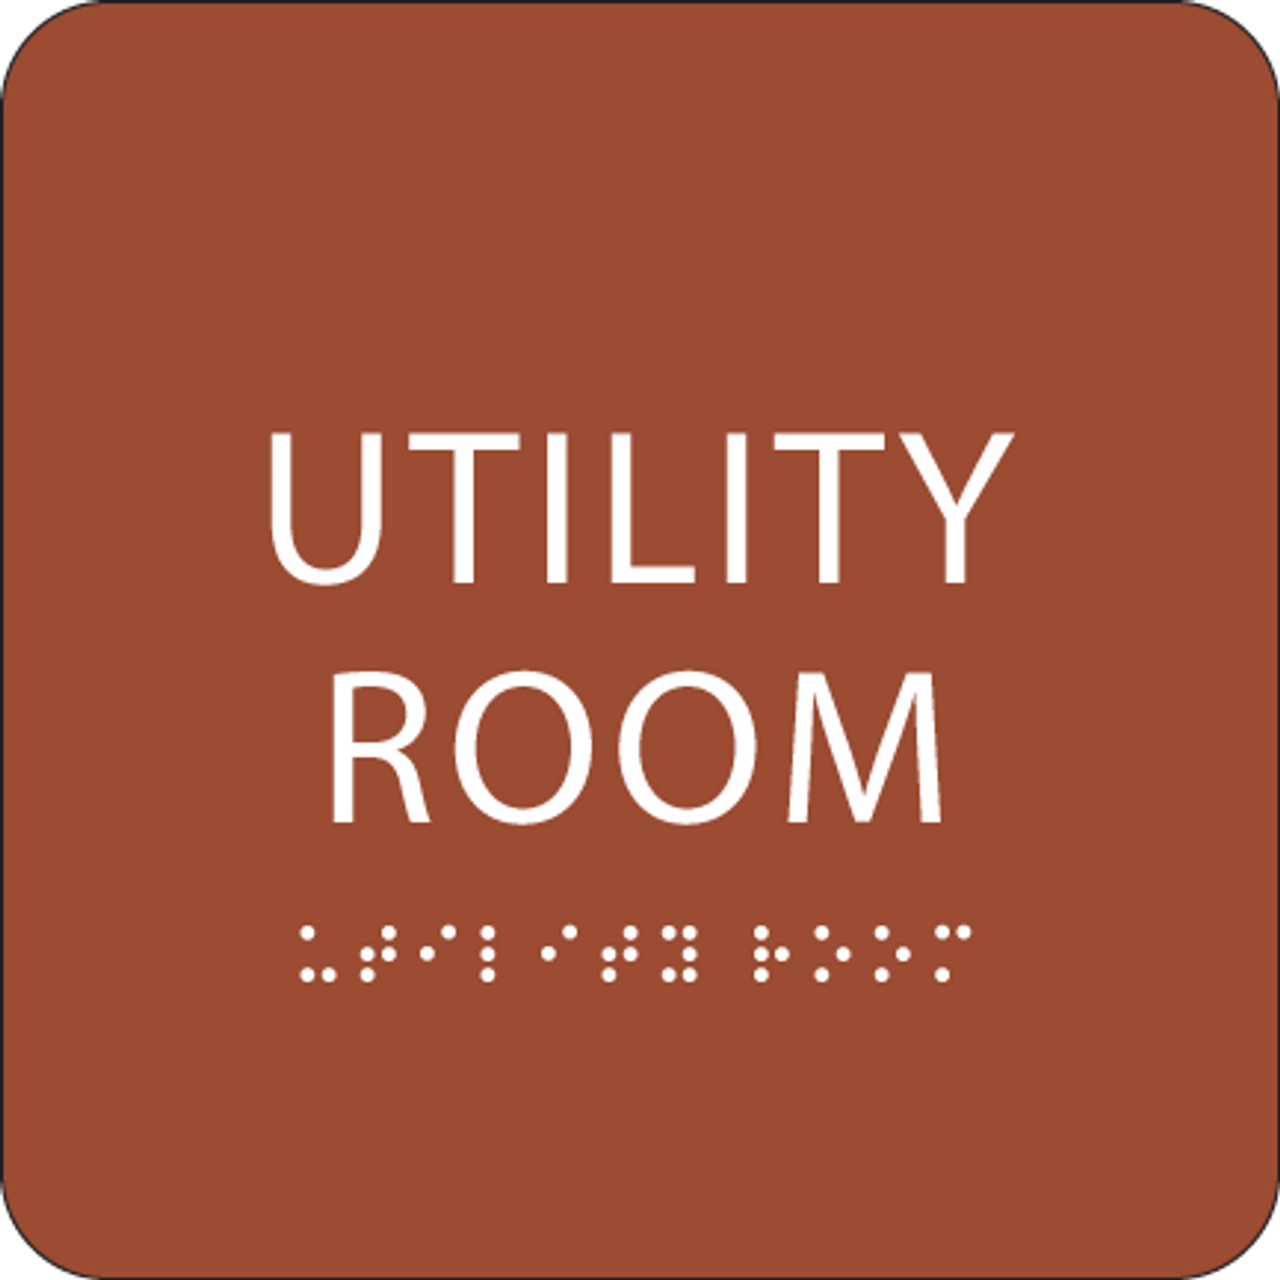 Orange Utility Room ADA Sign